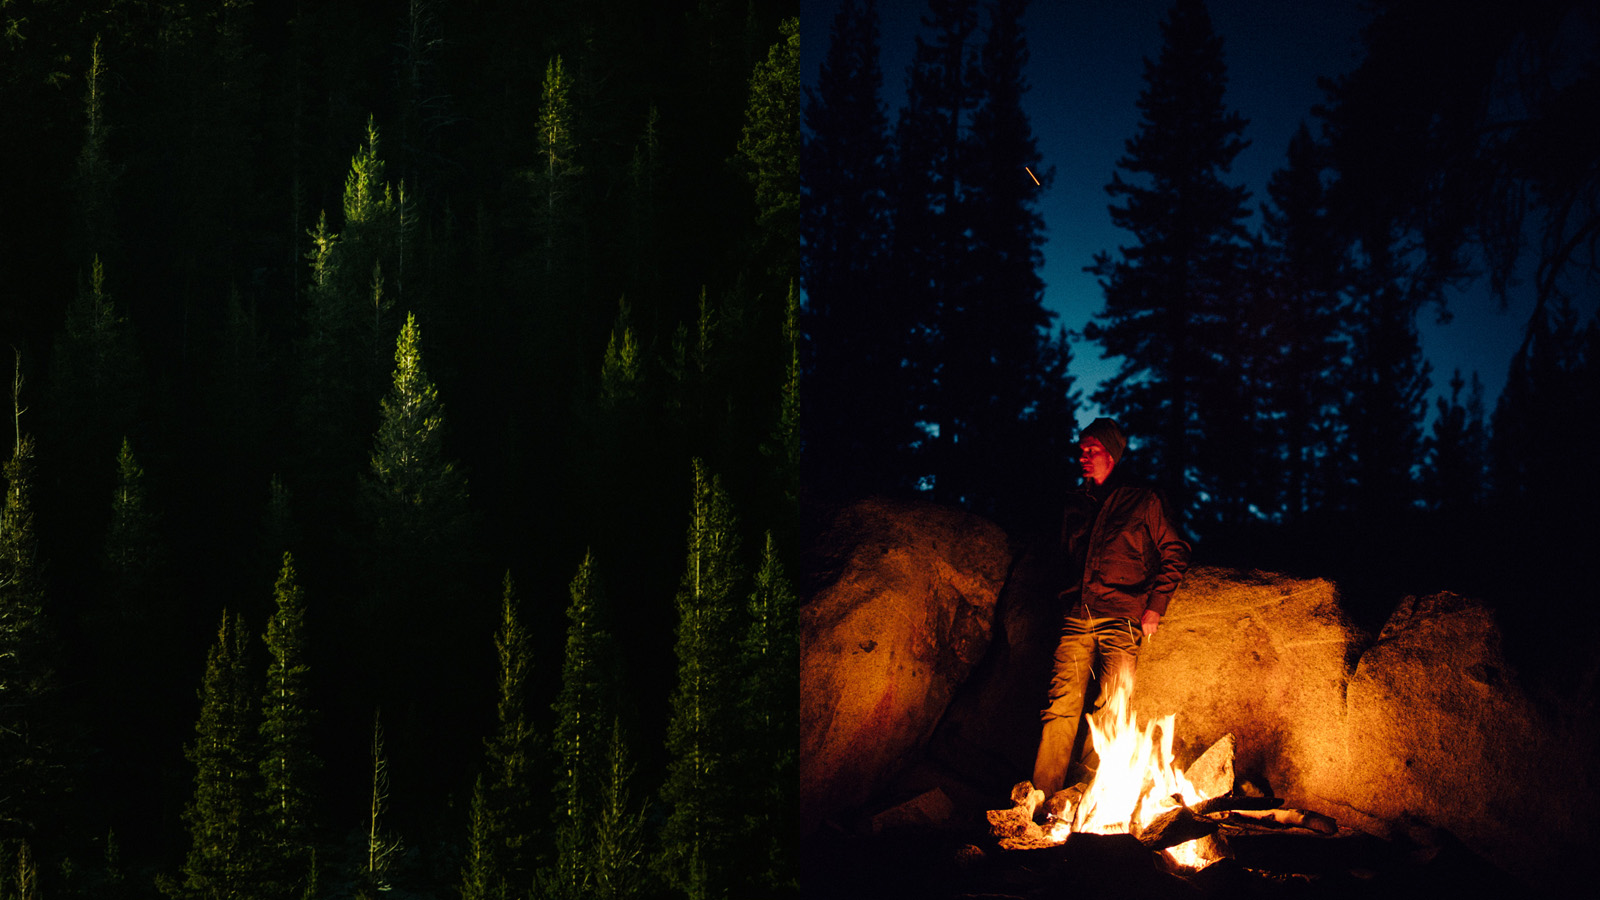 A pine catches the last of the light and Colby stays warm by the fire.